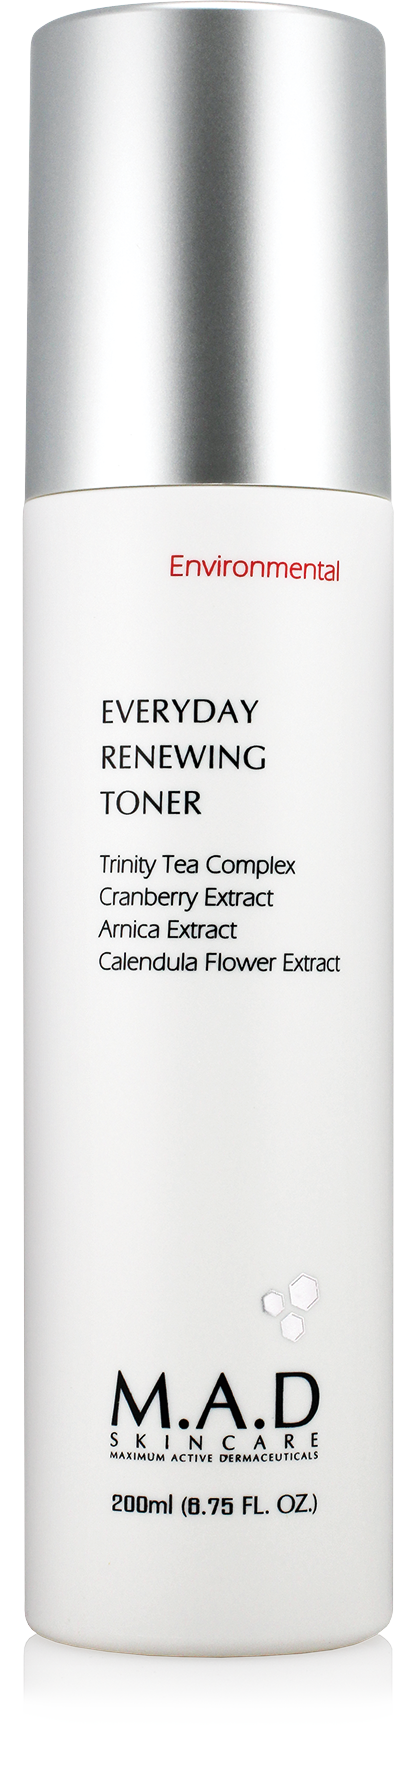 MAD EVERYDAY RENEWING TONER